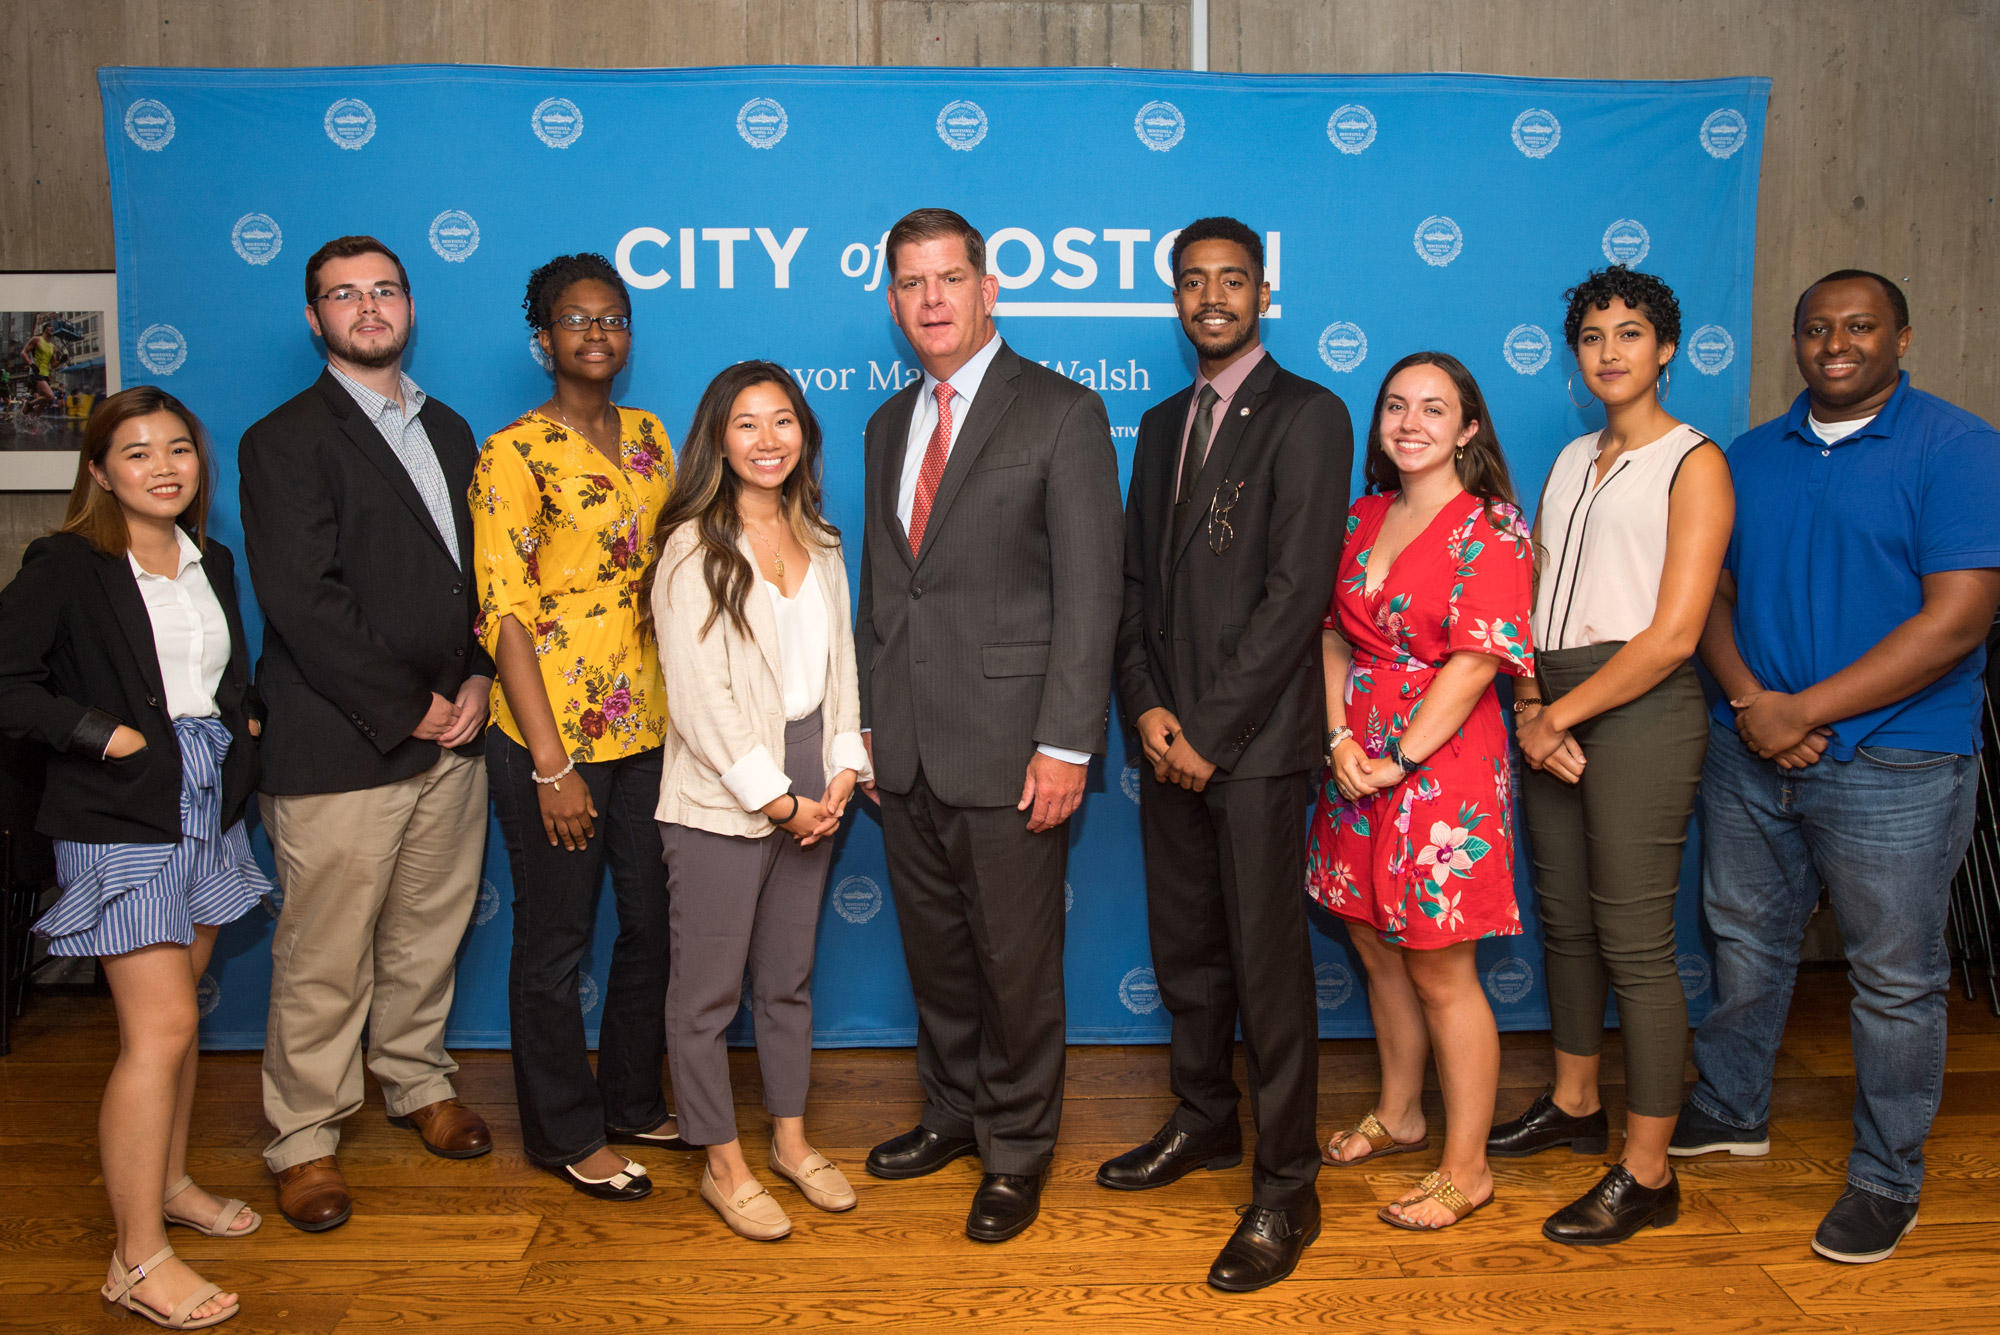 The city hall interns pose with Mayor Walsh